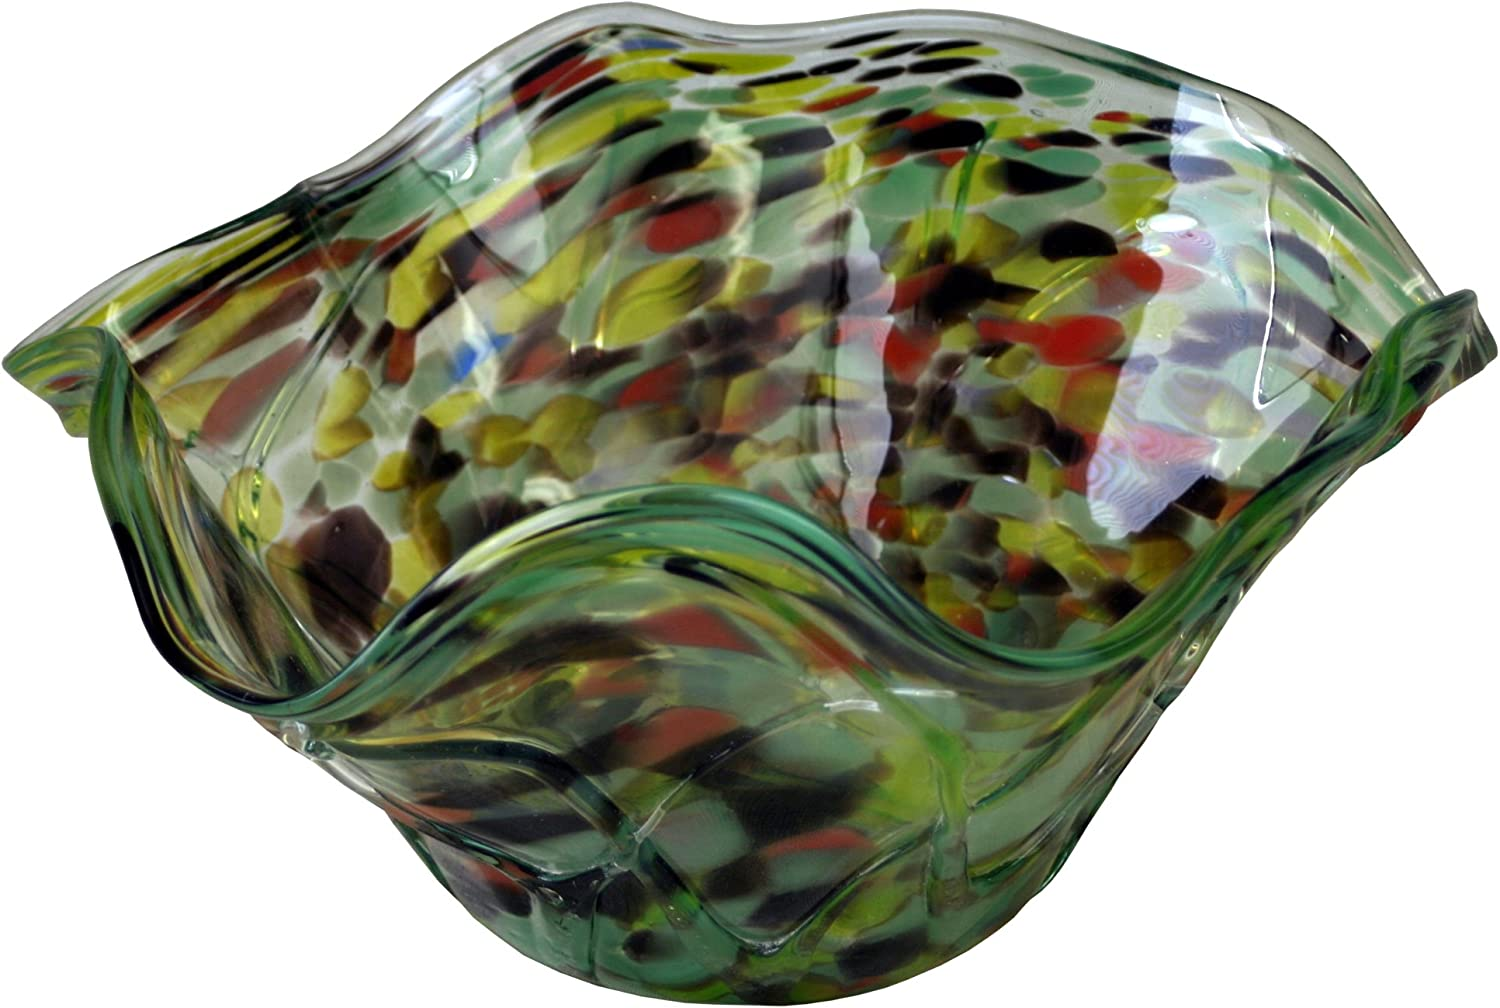 Cohasset Abstract Decorative Glass Bowl Large Green Home Kitchen